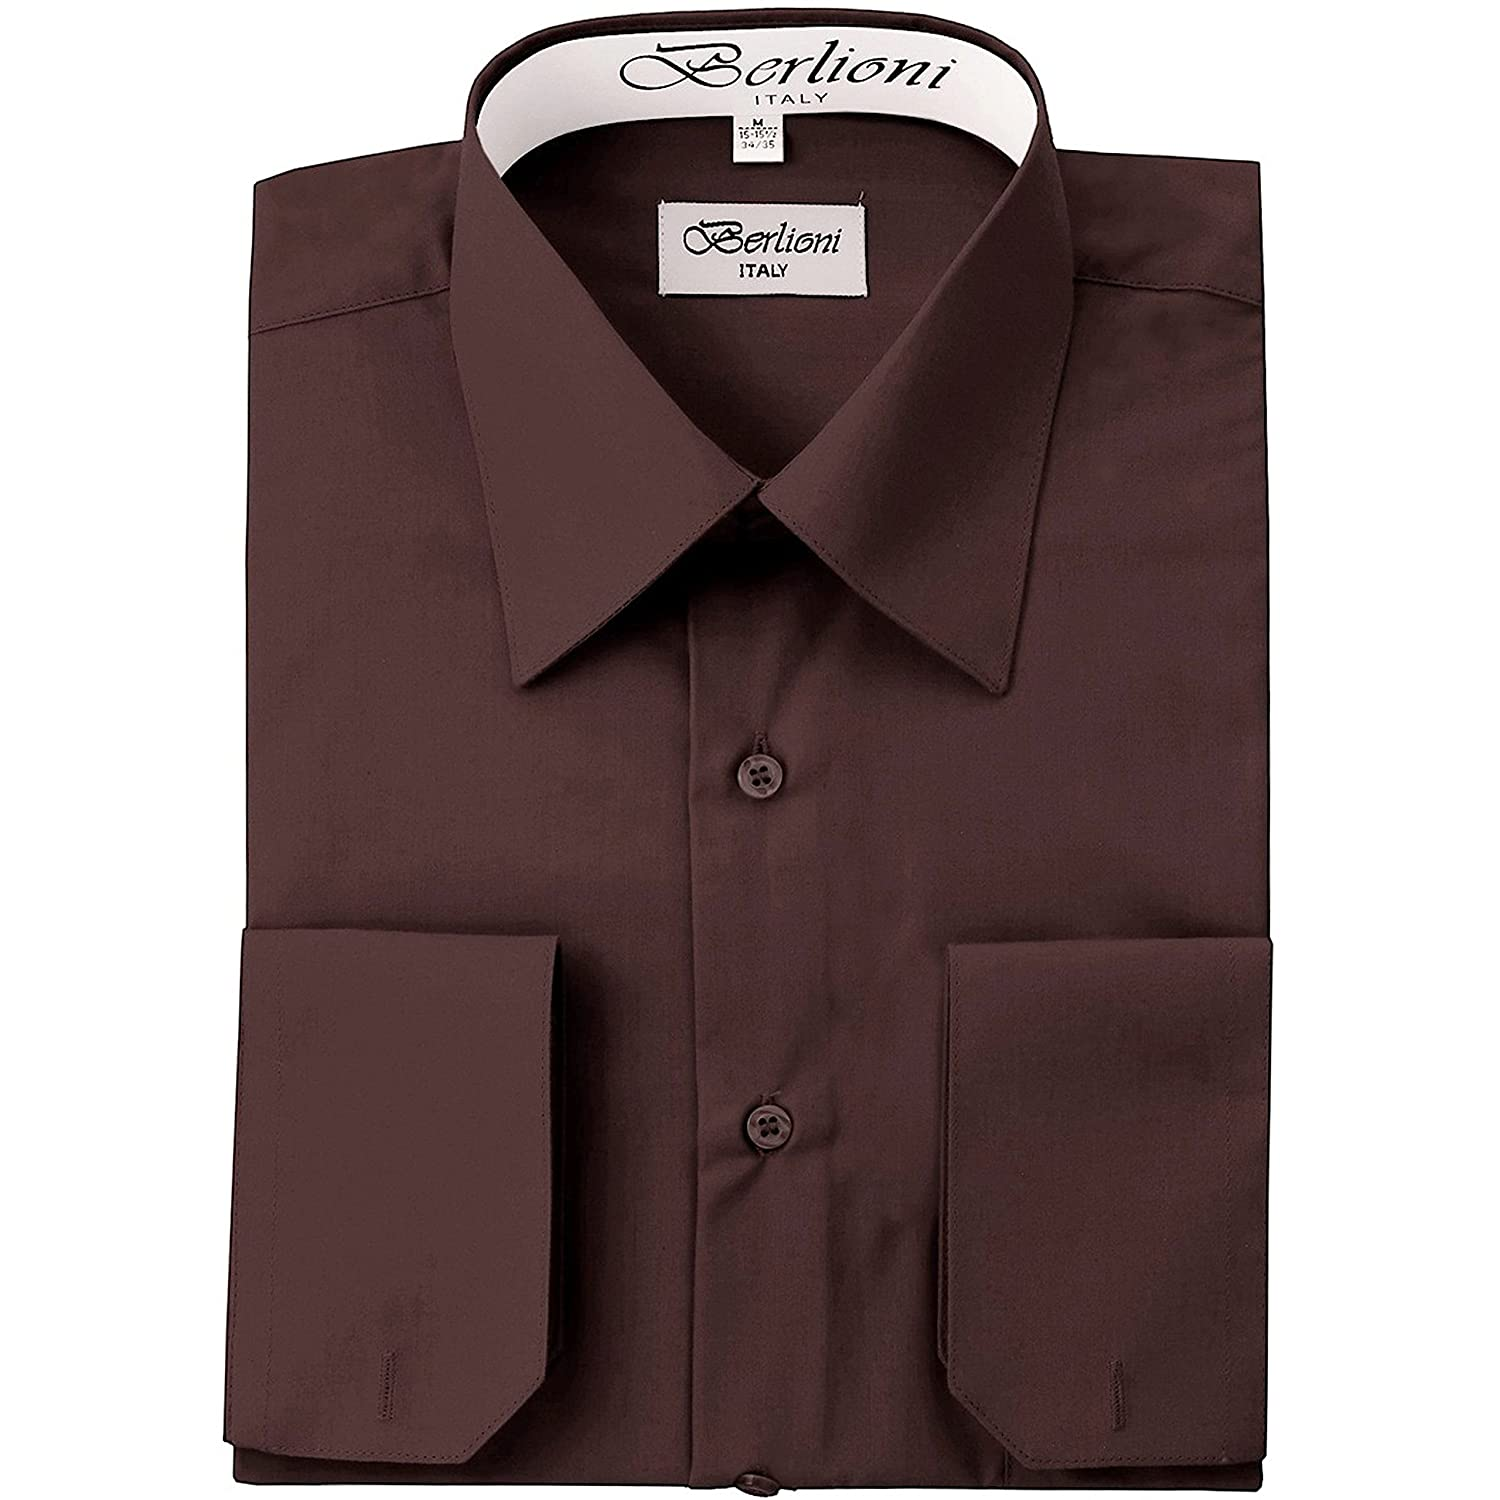 Berlioni Men's Dress Shirt - Convertible French Cuffs - Huge Color Selection 12NO